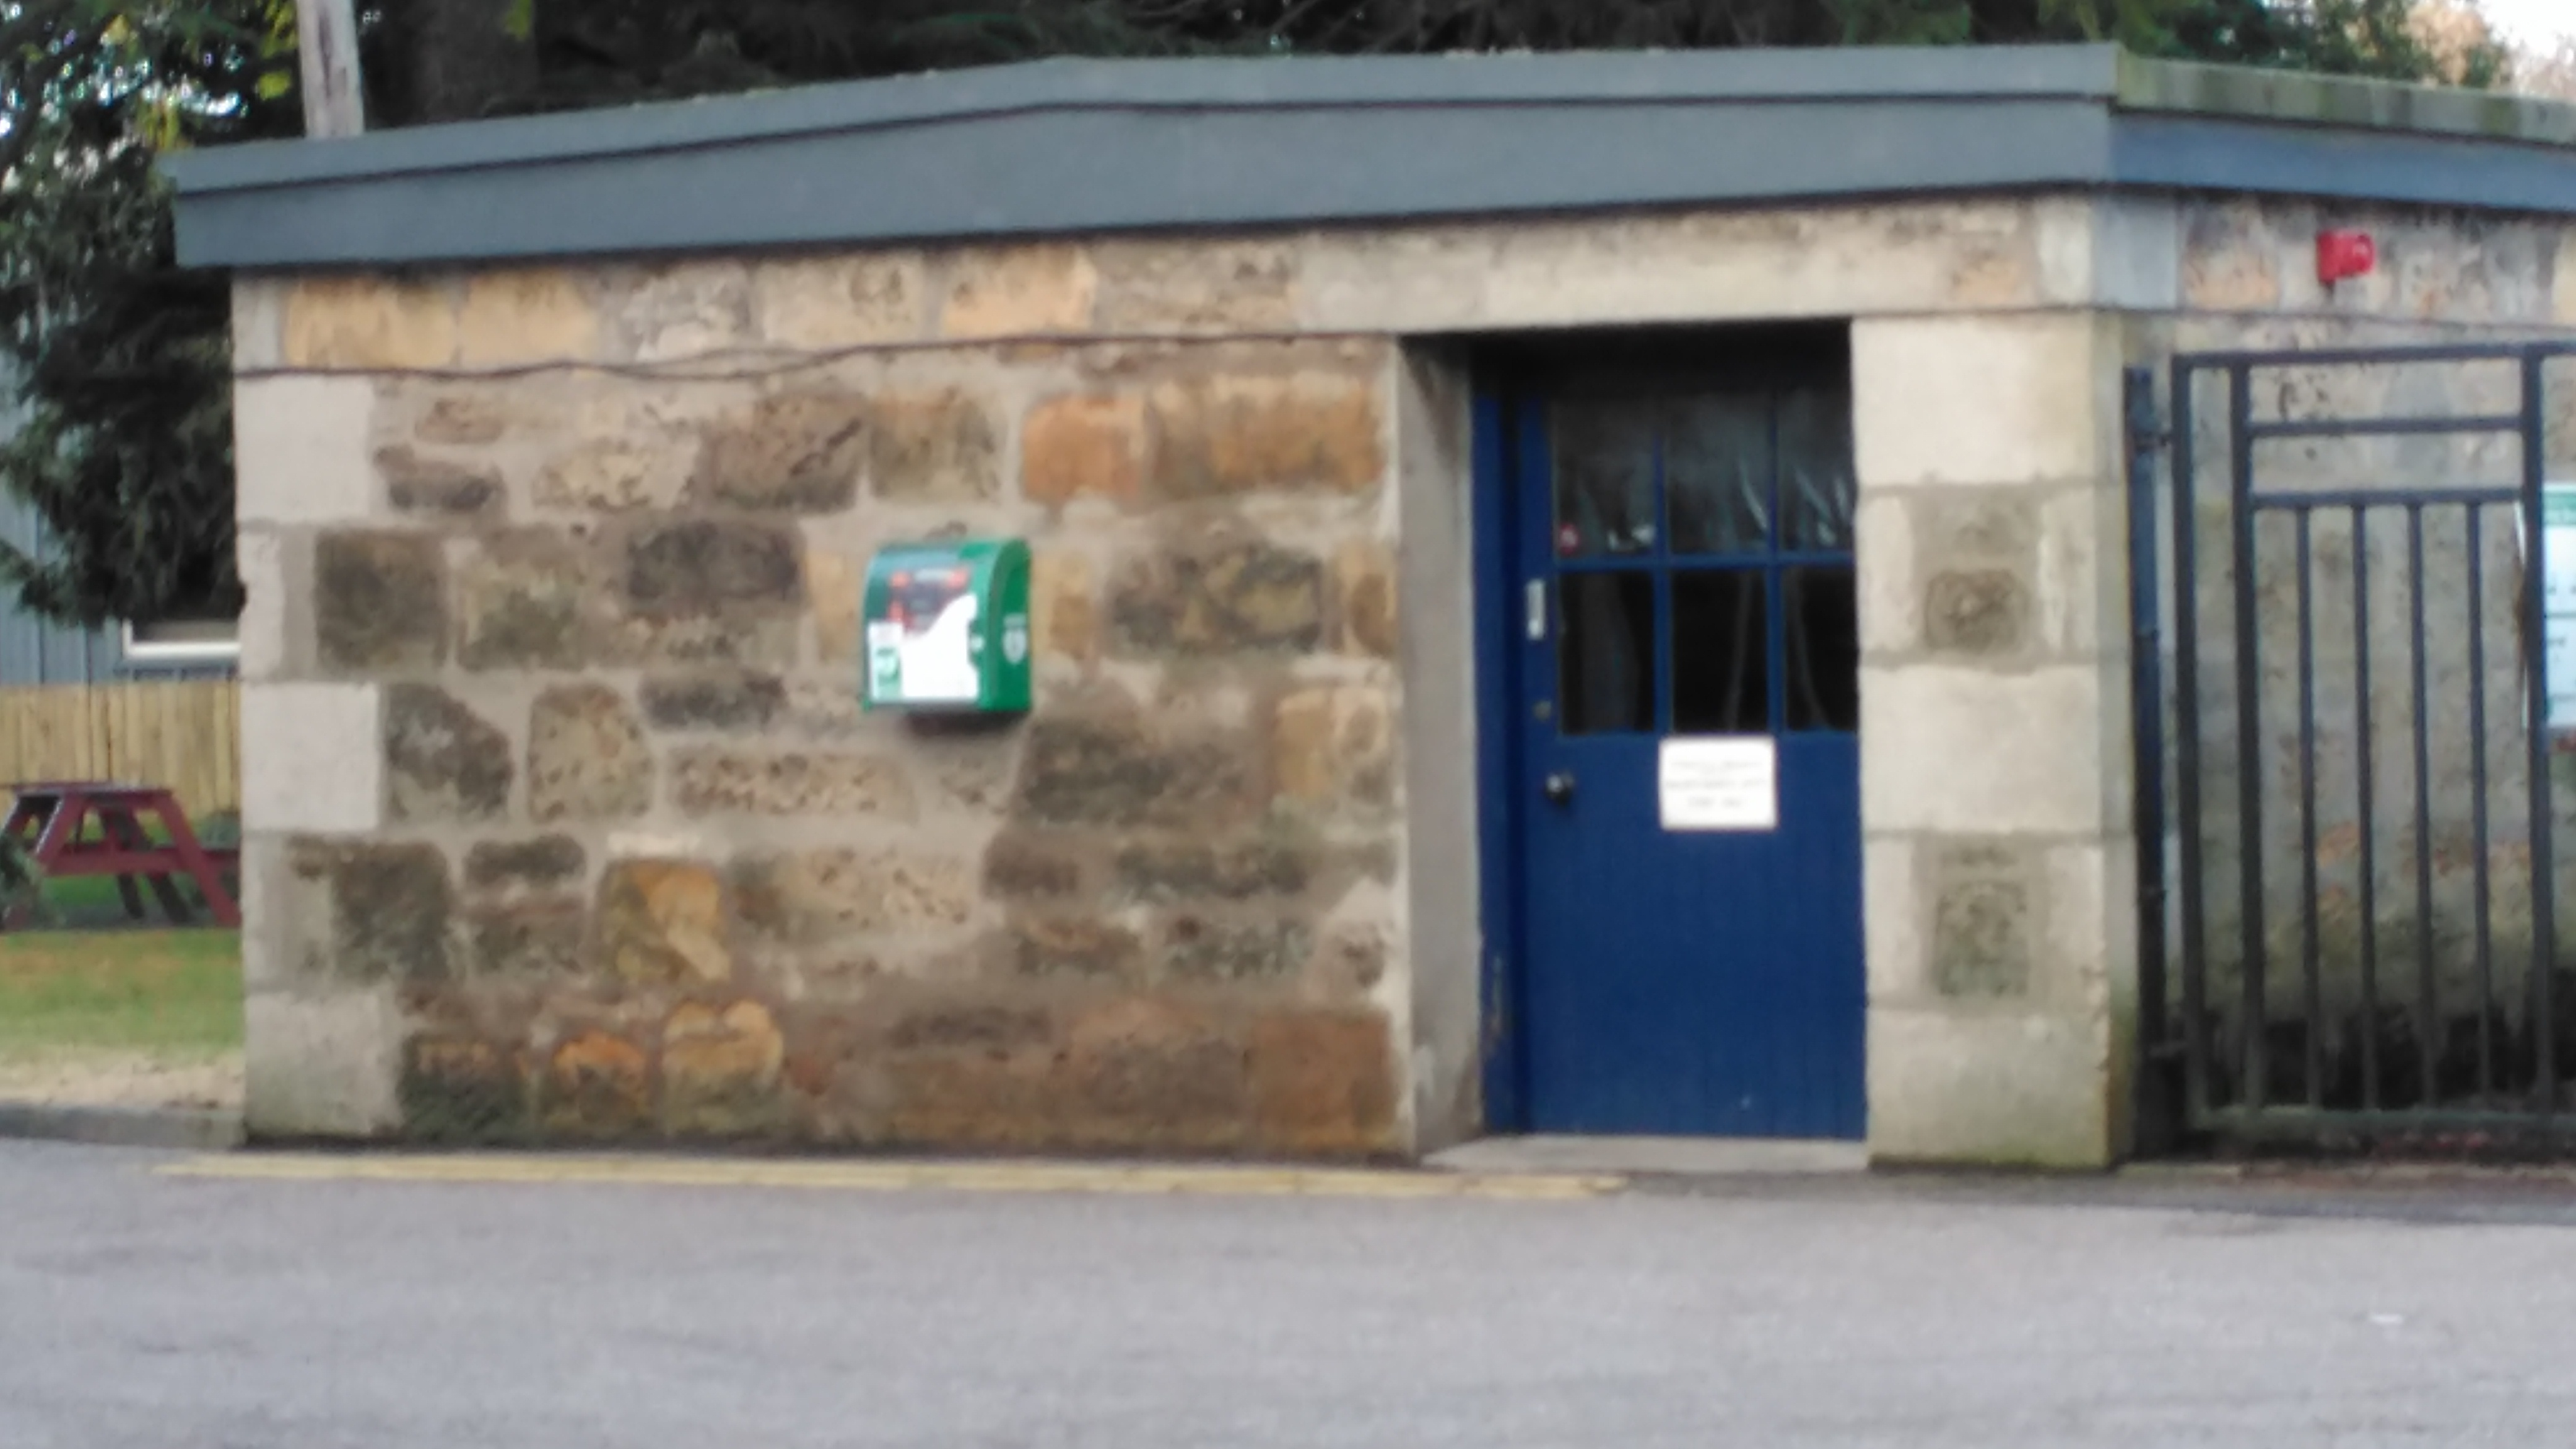 Defib at Johnstons of Elgin